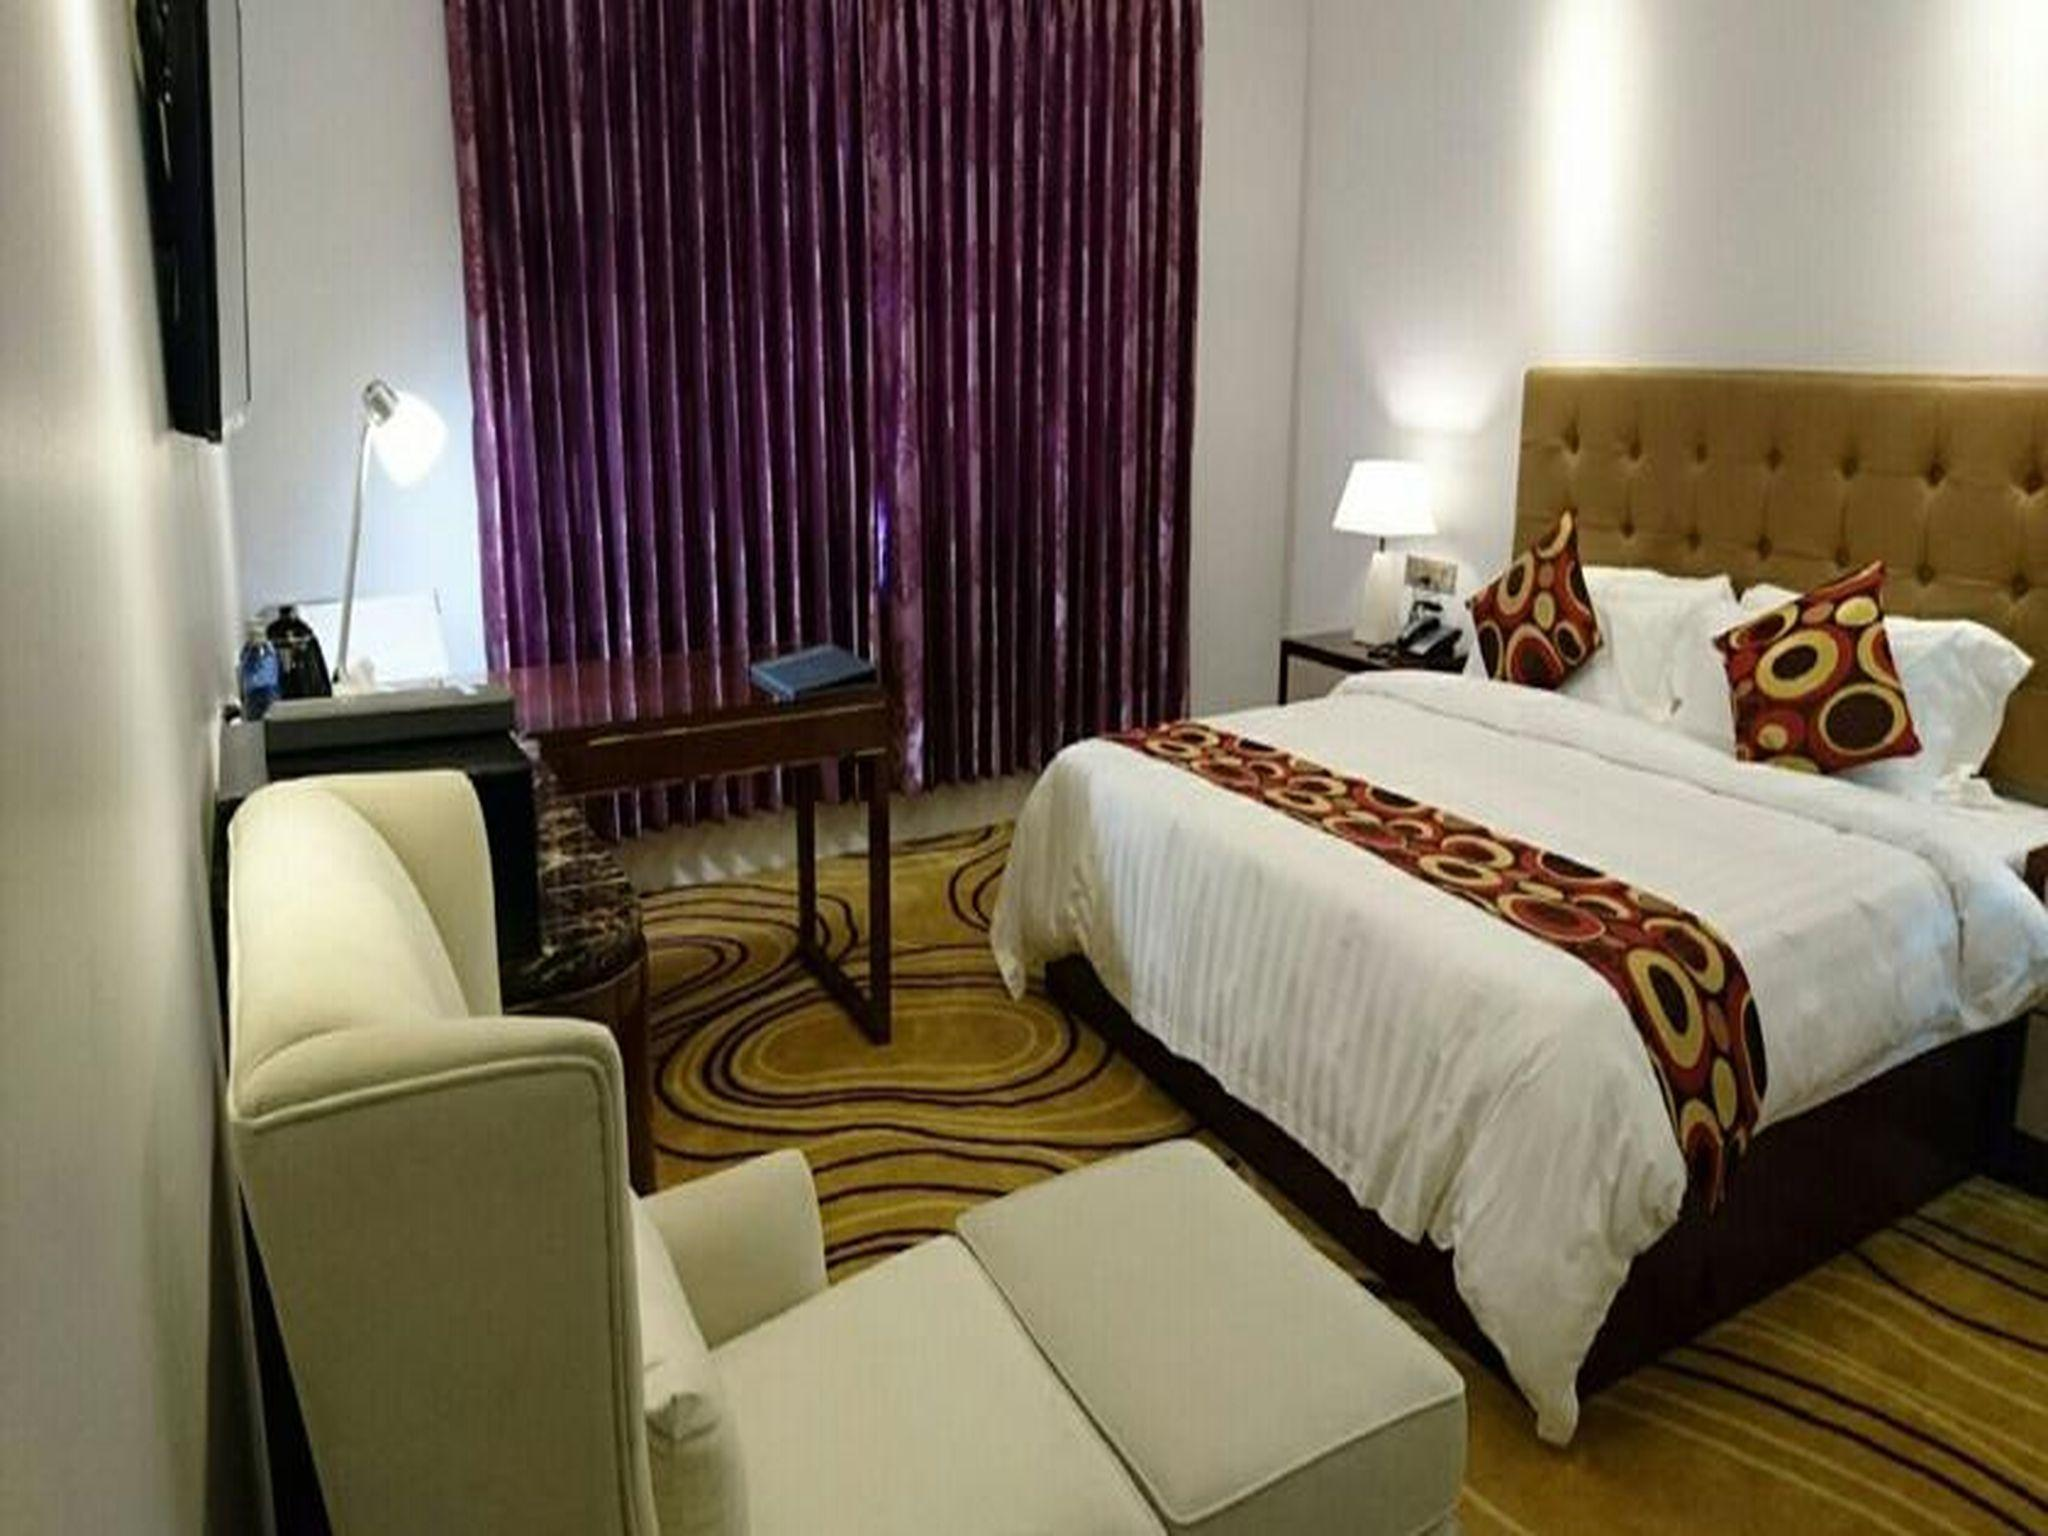 Hotel Queen Jamadevi Best Price On Royal Hinthar Hotel In Mawlamyine Reviews